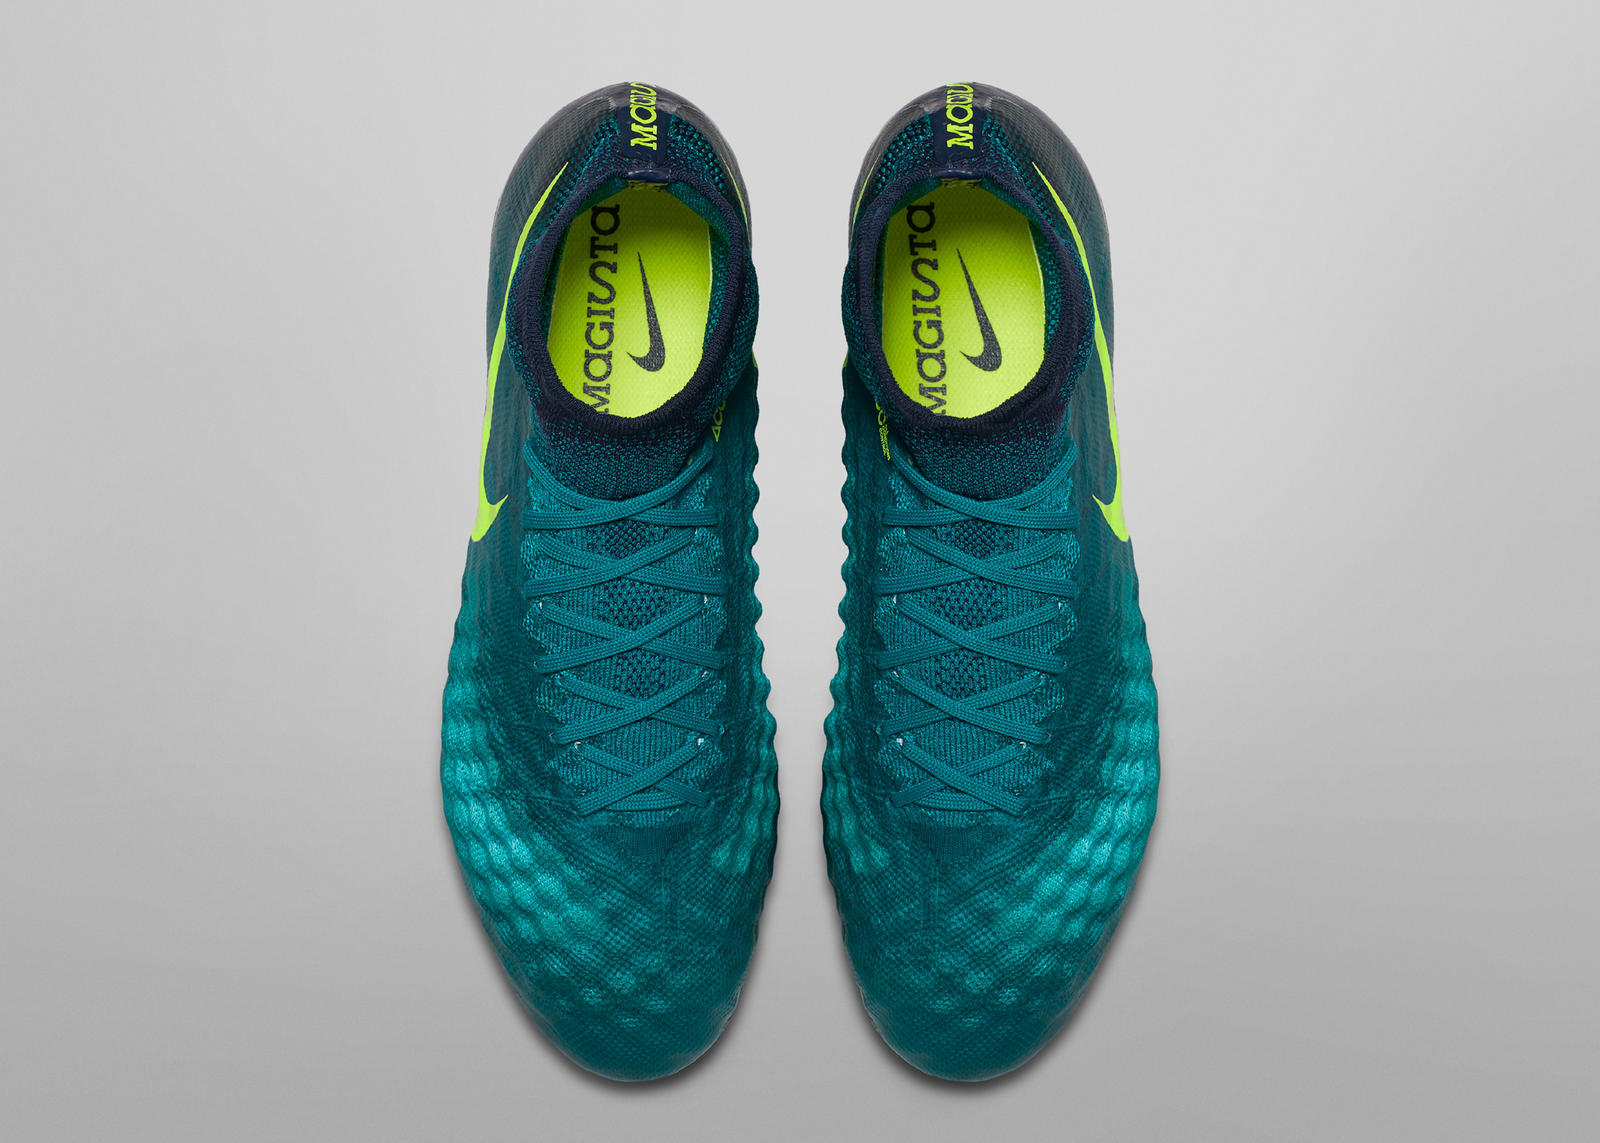 nike_football_floodlights_pack_magista_obra_2_fg_01